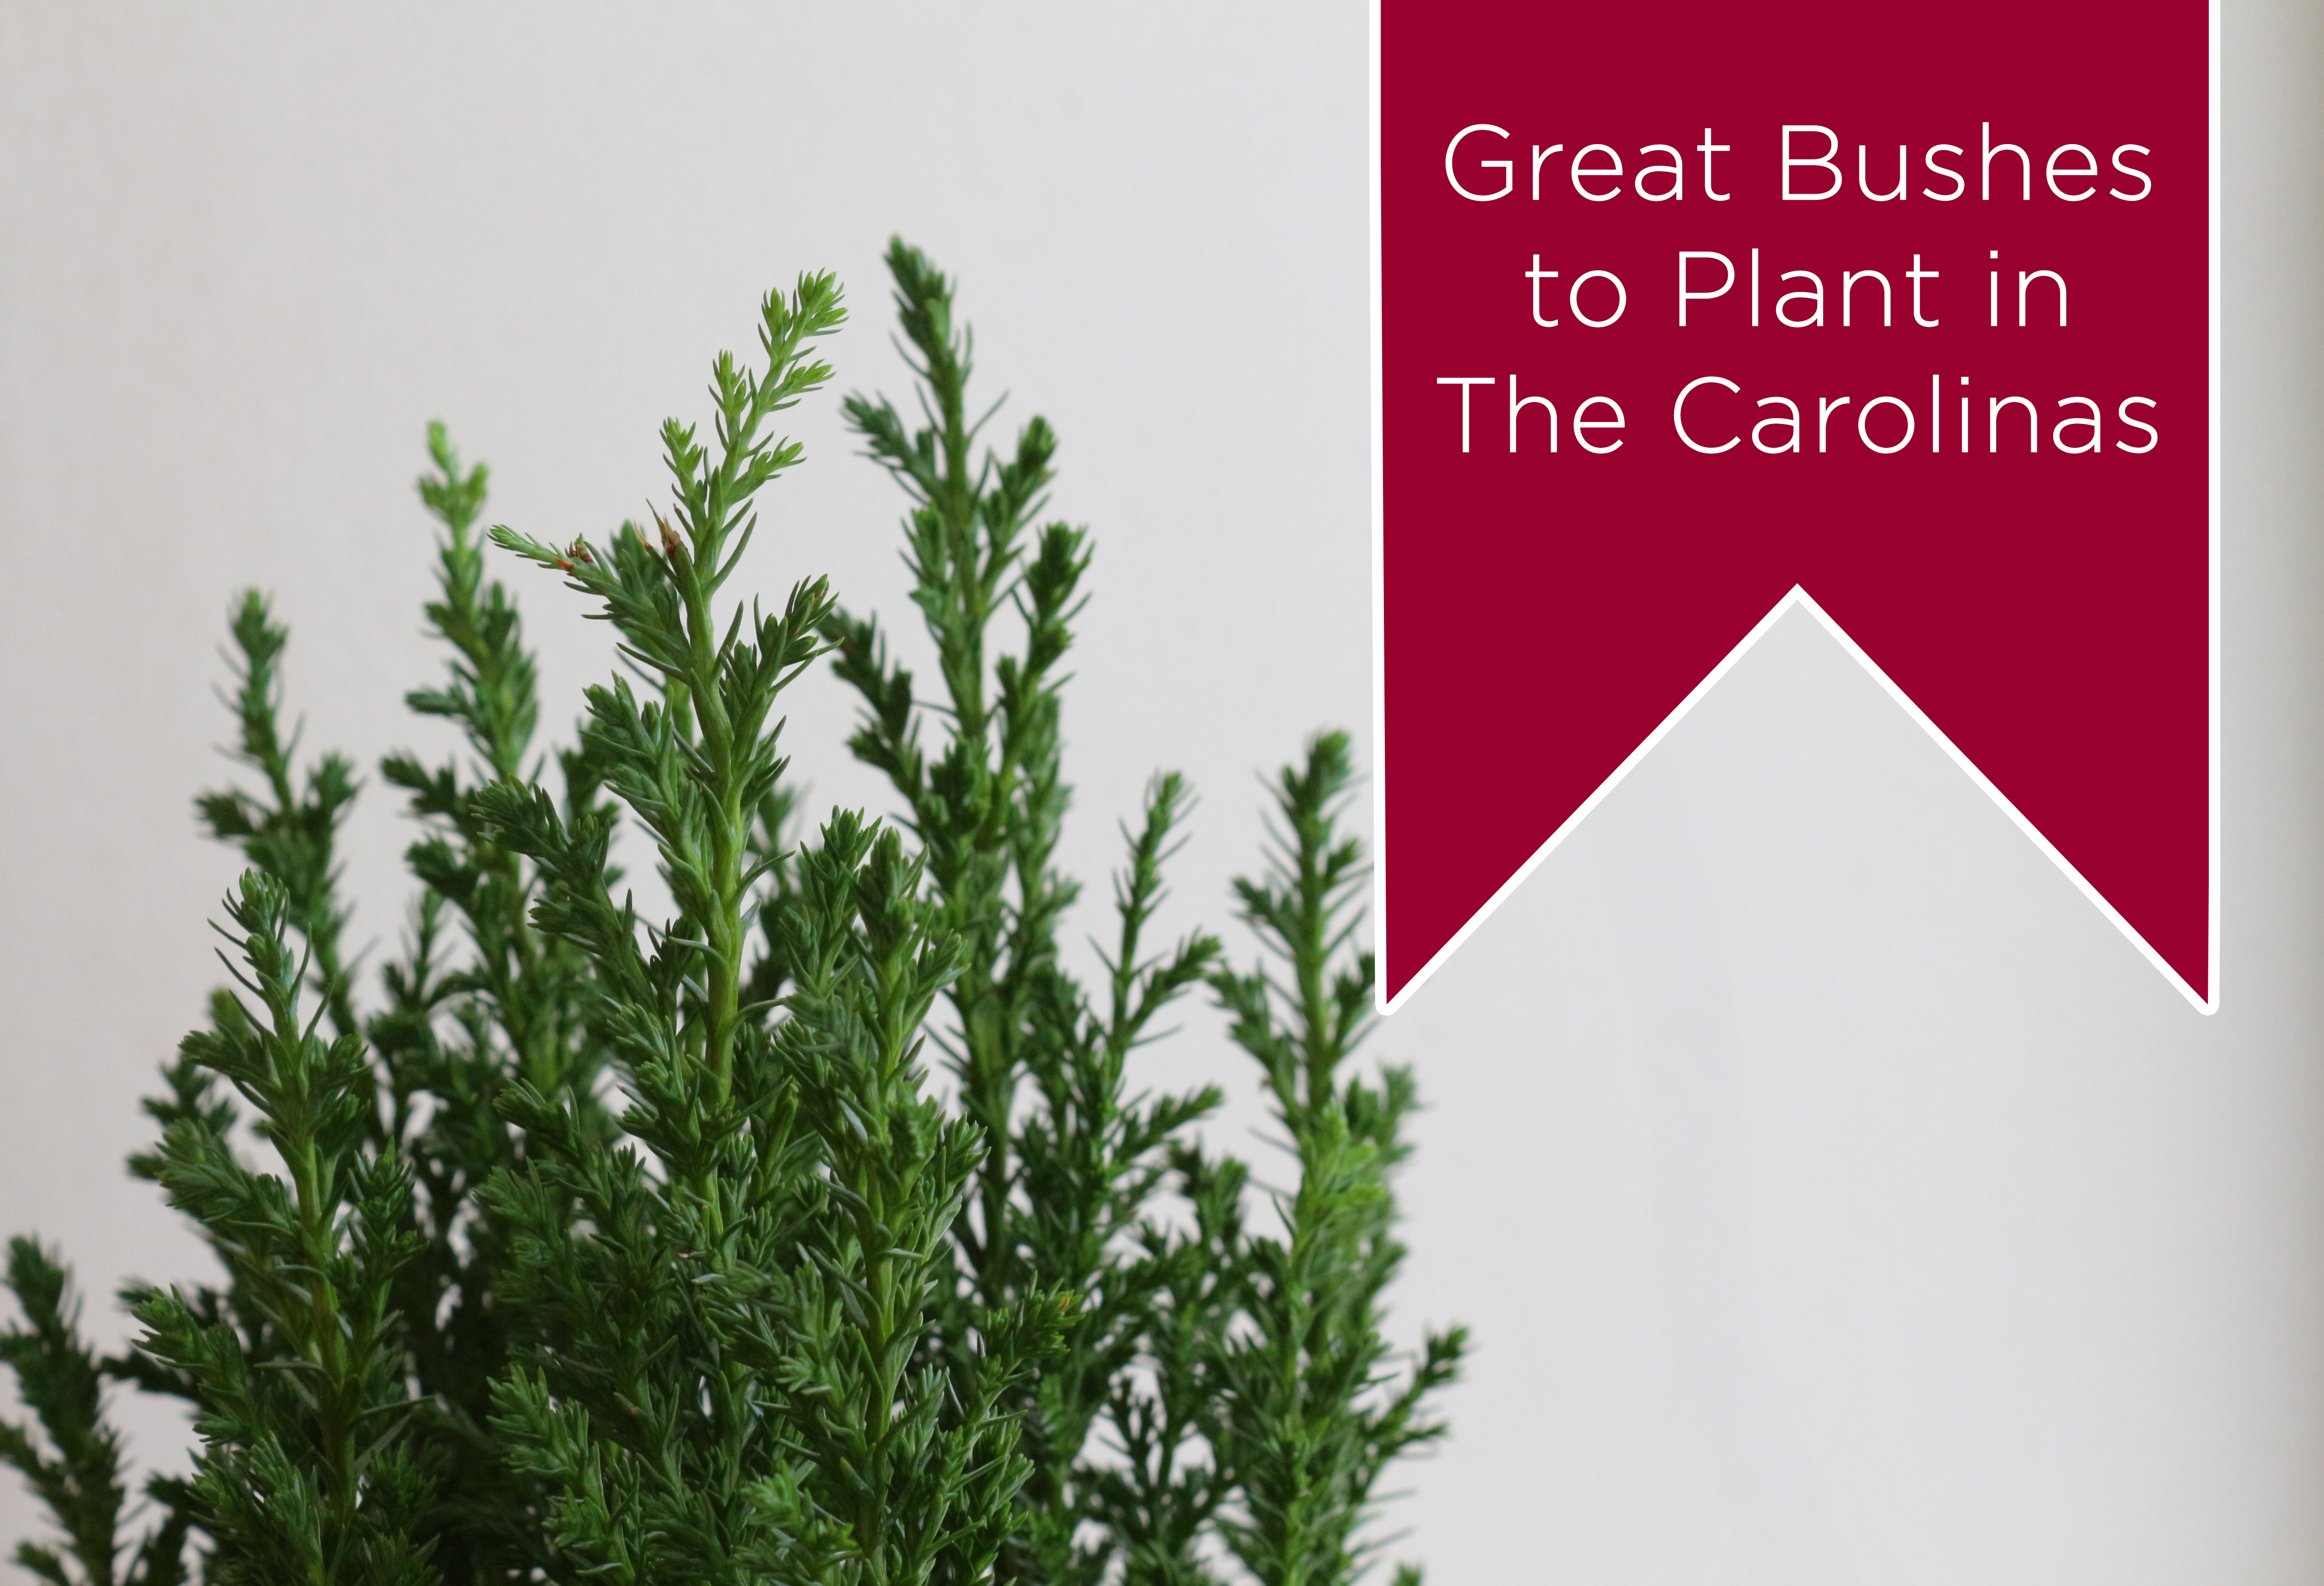 Great bushes to plant in North and South Carolina